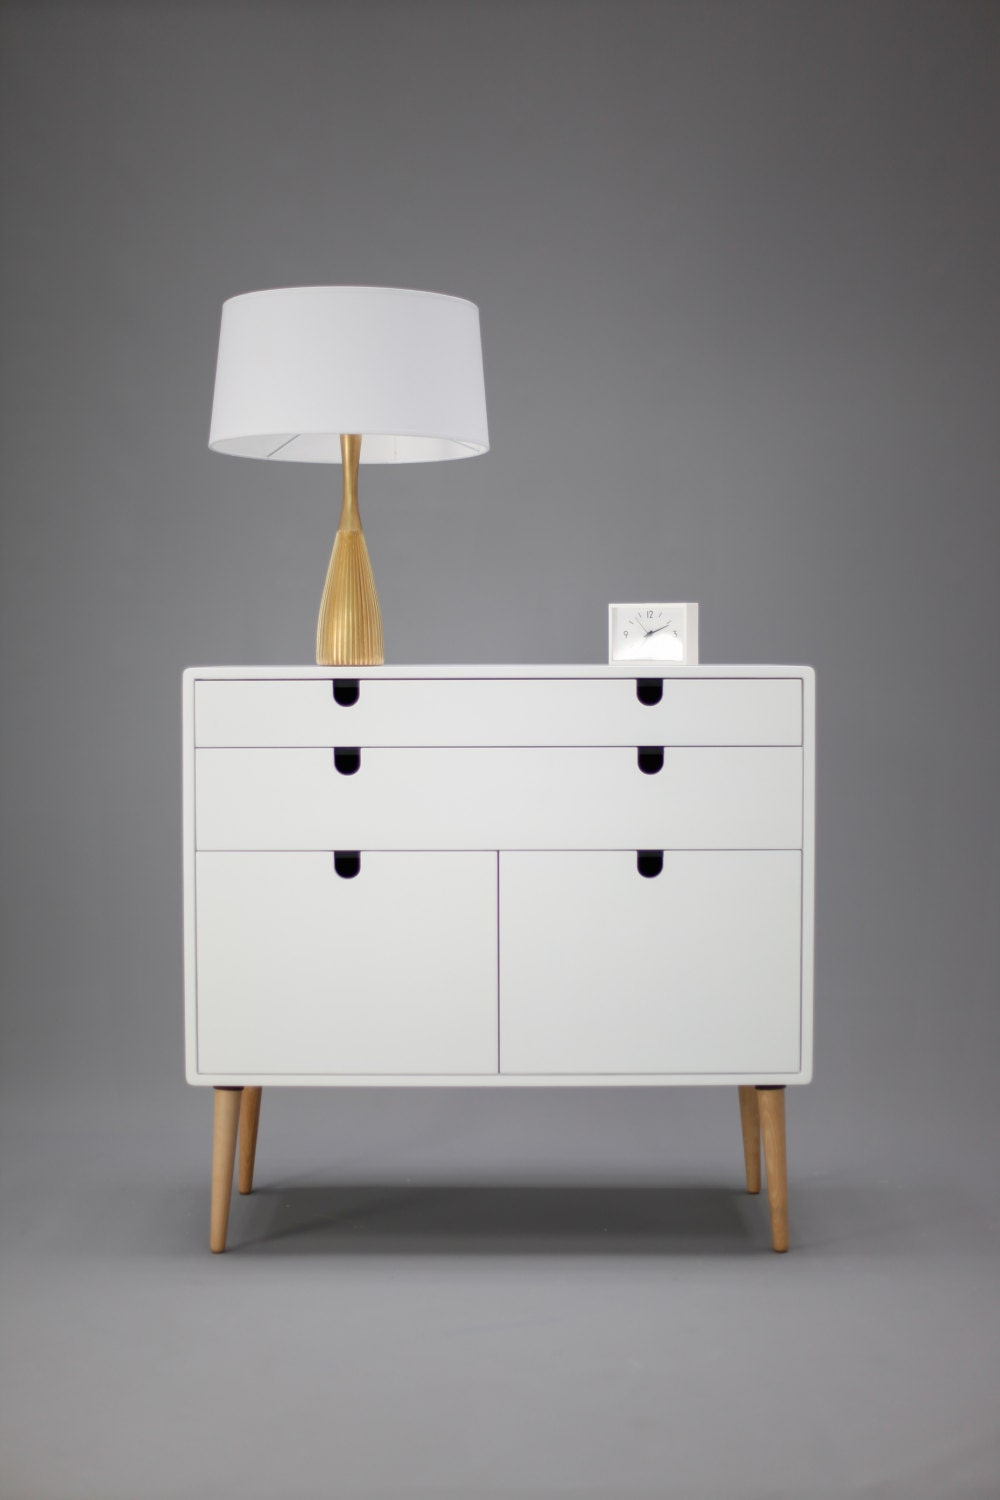 Modern White Credenza Dresser Commode Credenza In Solid Oak Wood Board Style